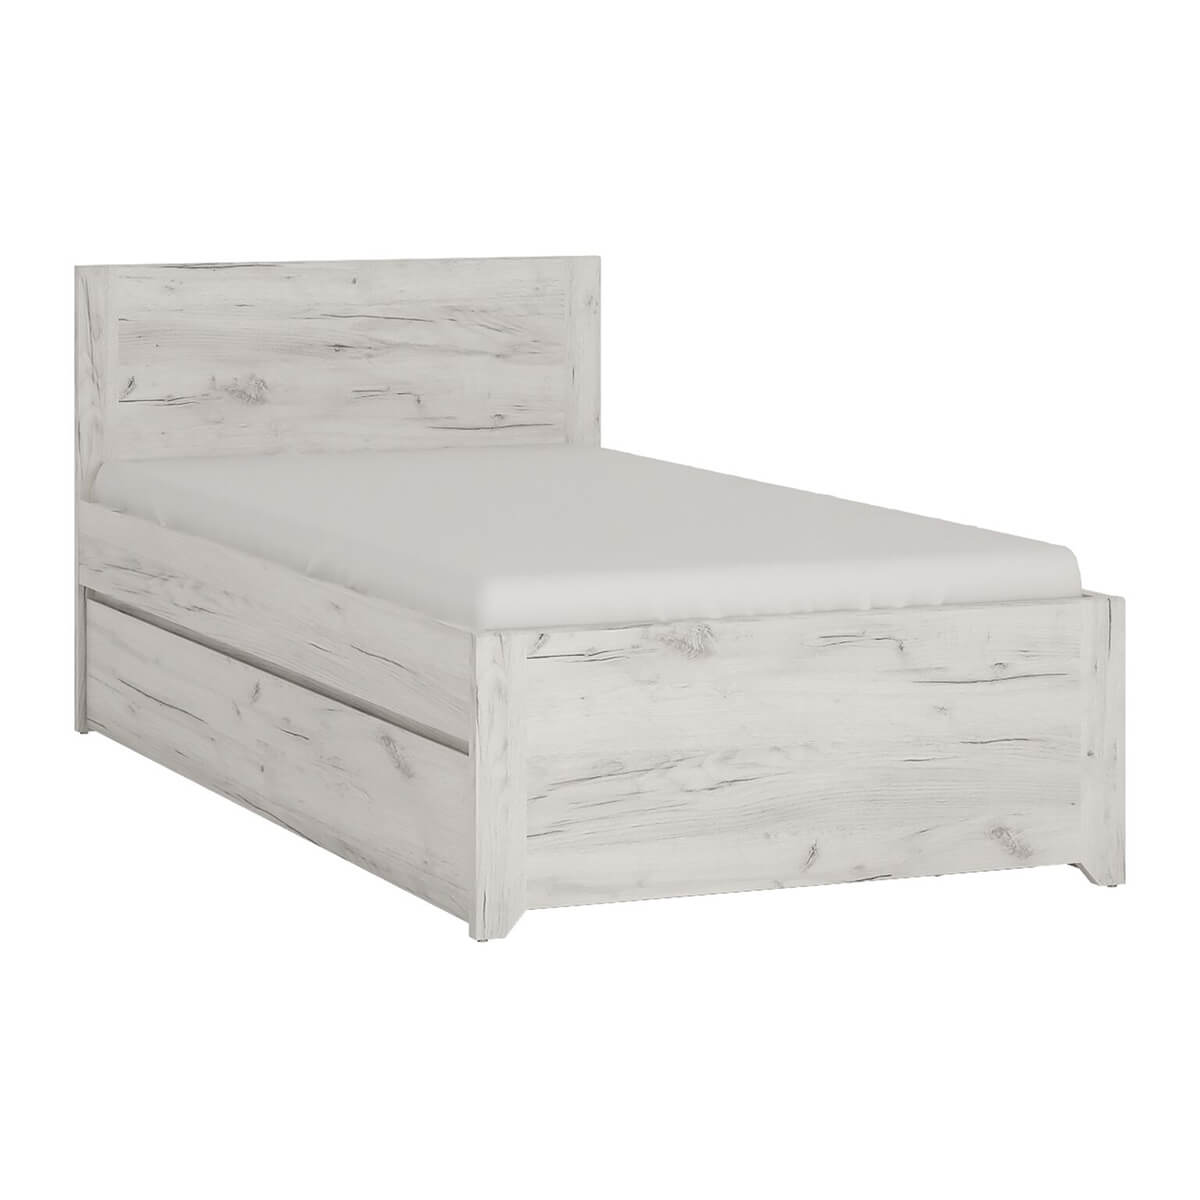 Starlight Kids Single Bed with Underbed Drawer Textured White